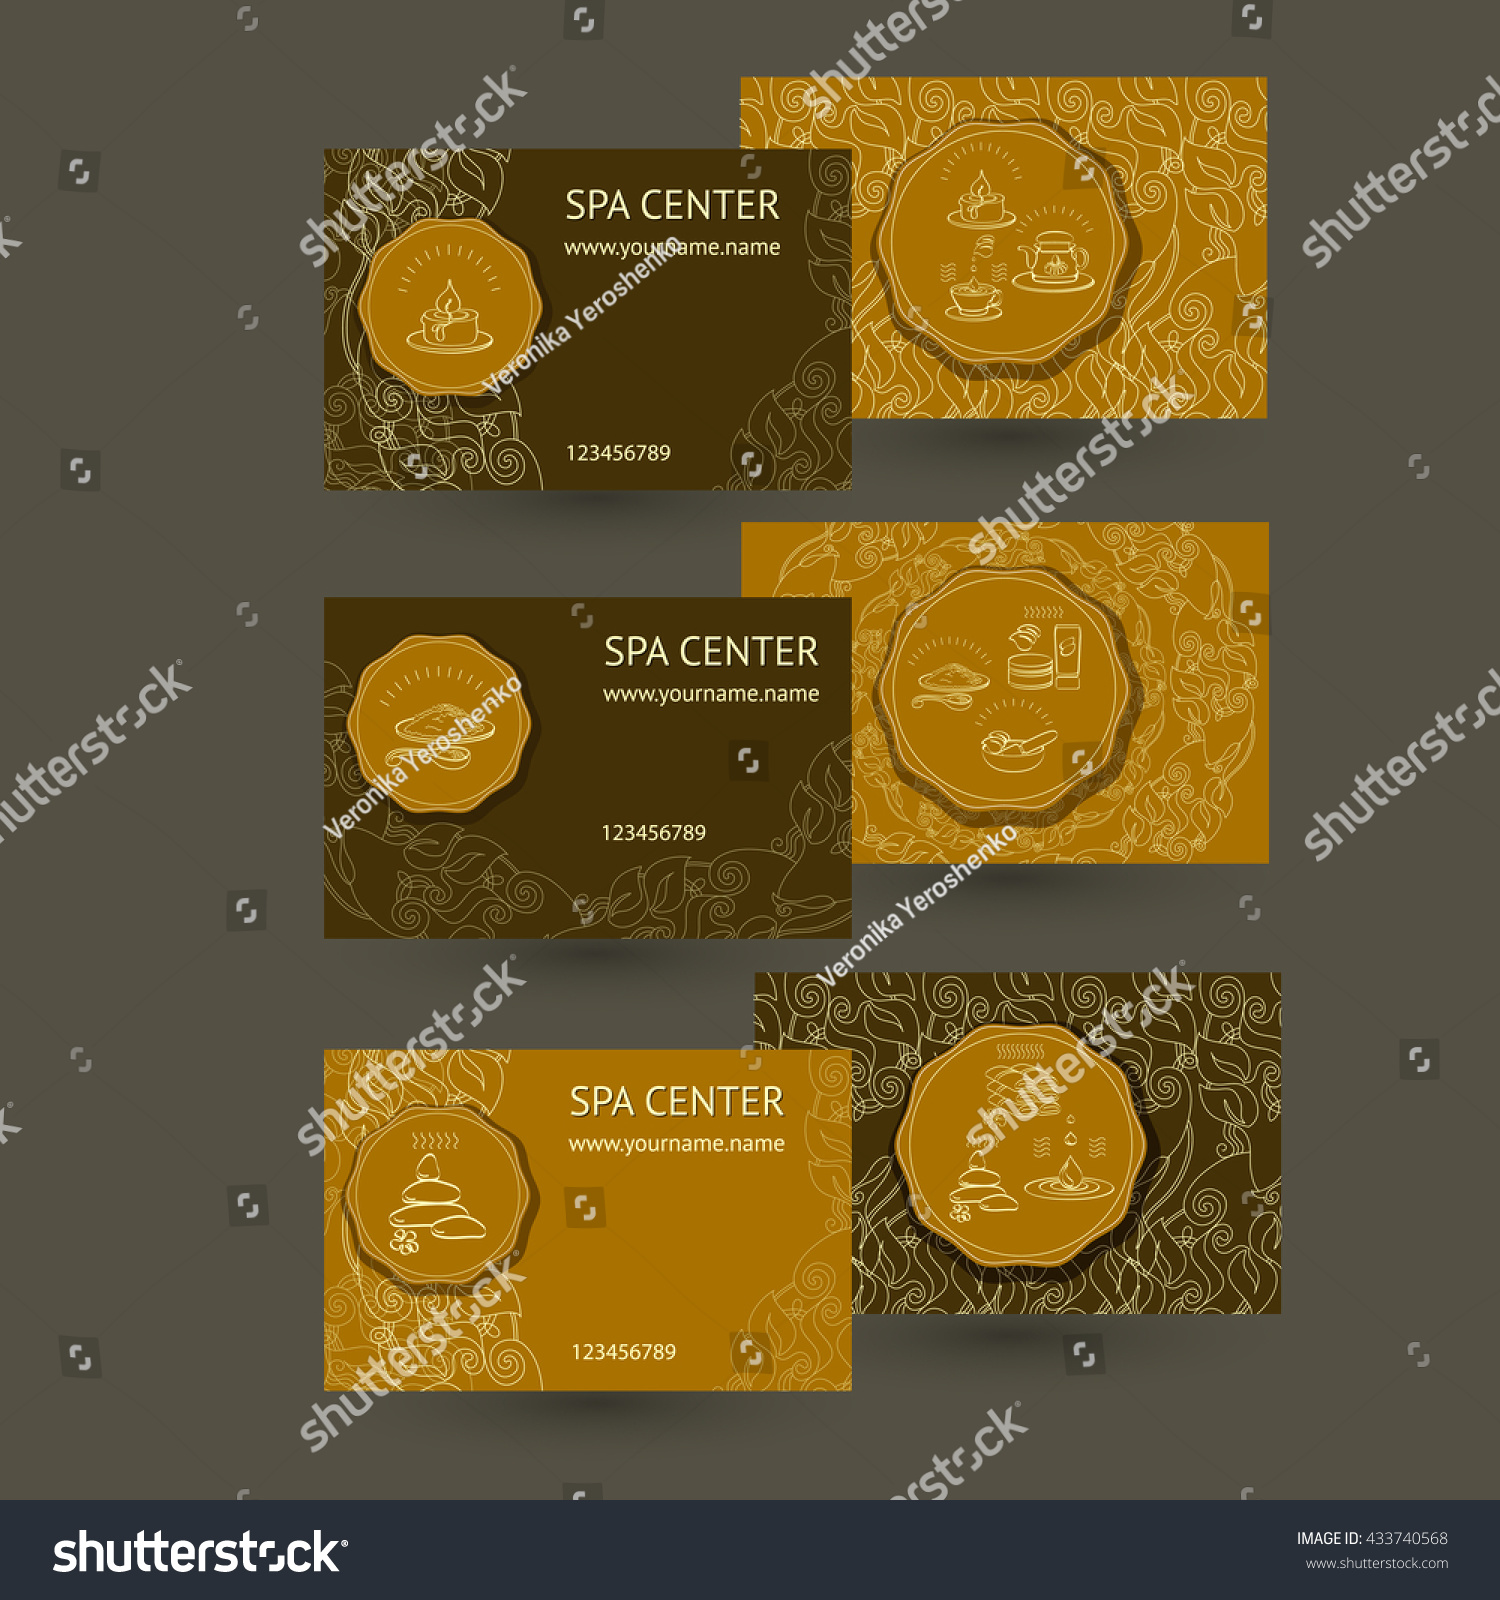 Vector Template Spa Business Cards Icons Stock Vector 433740568 ...